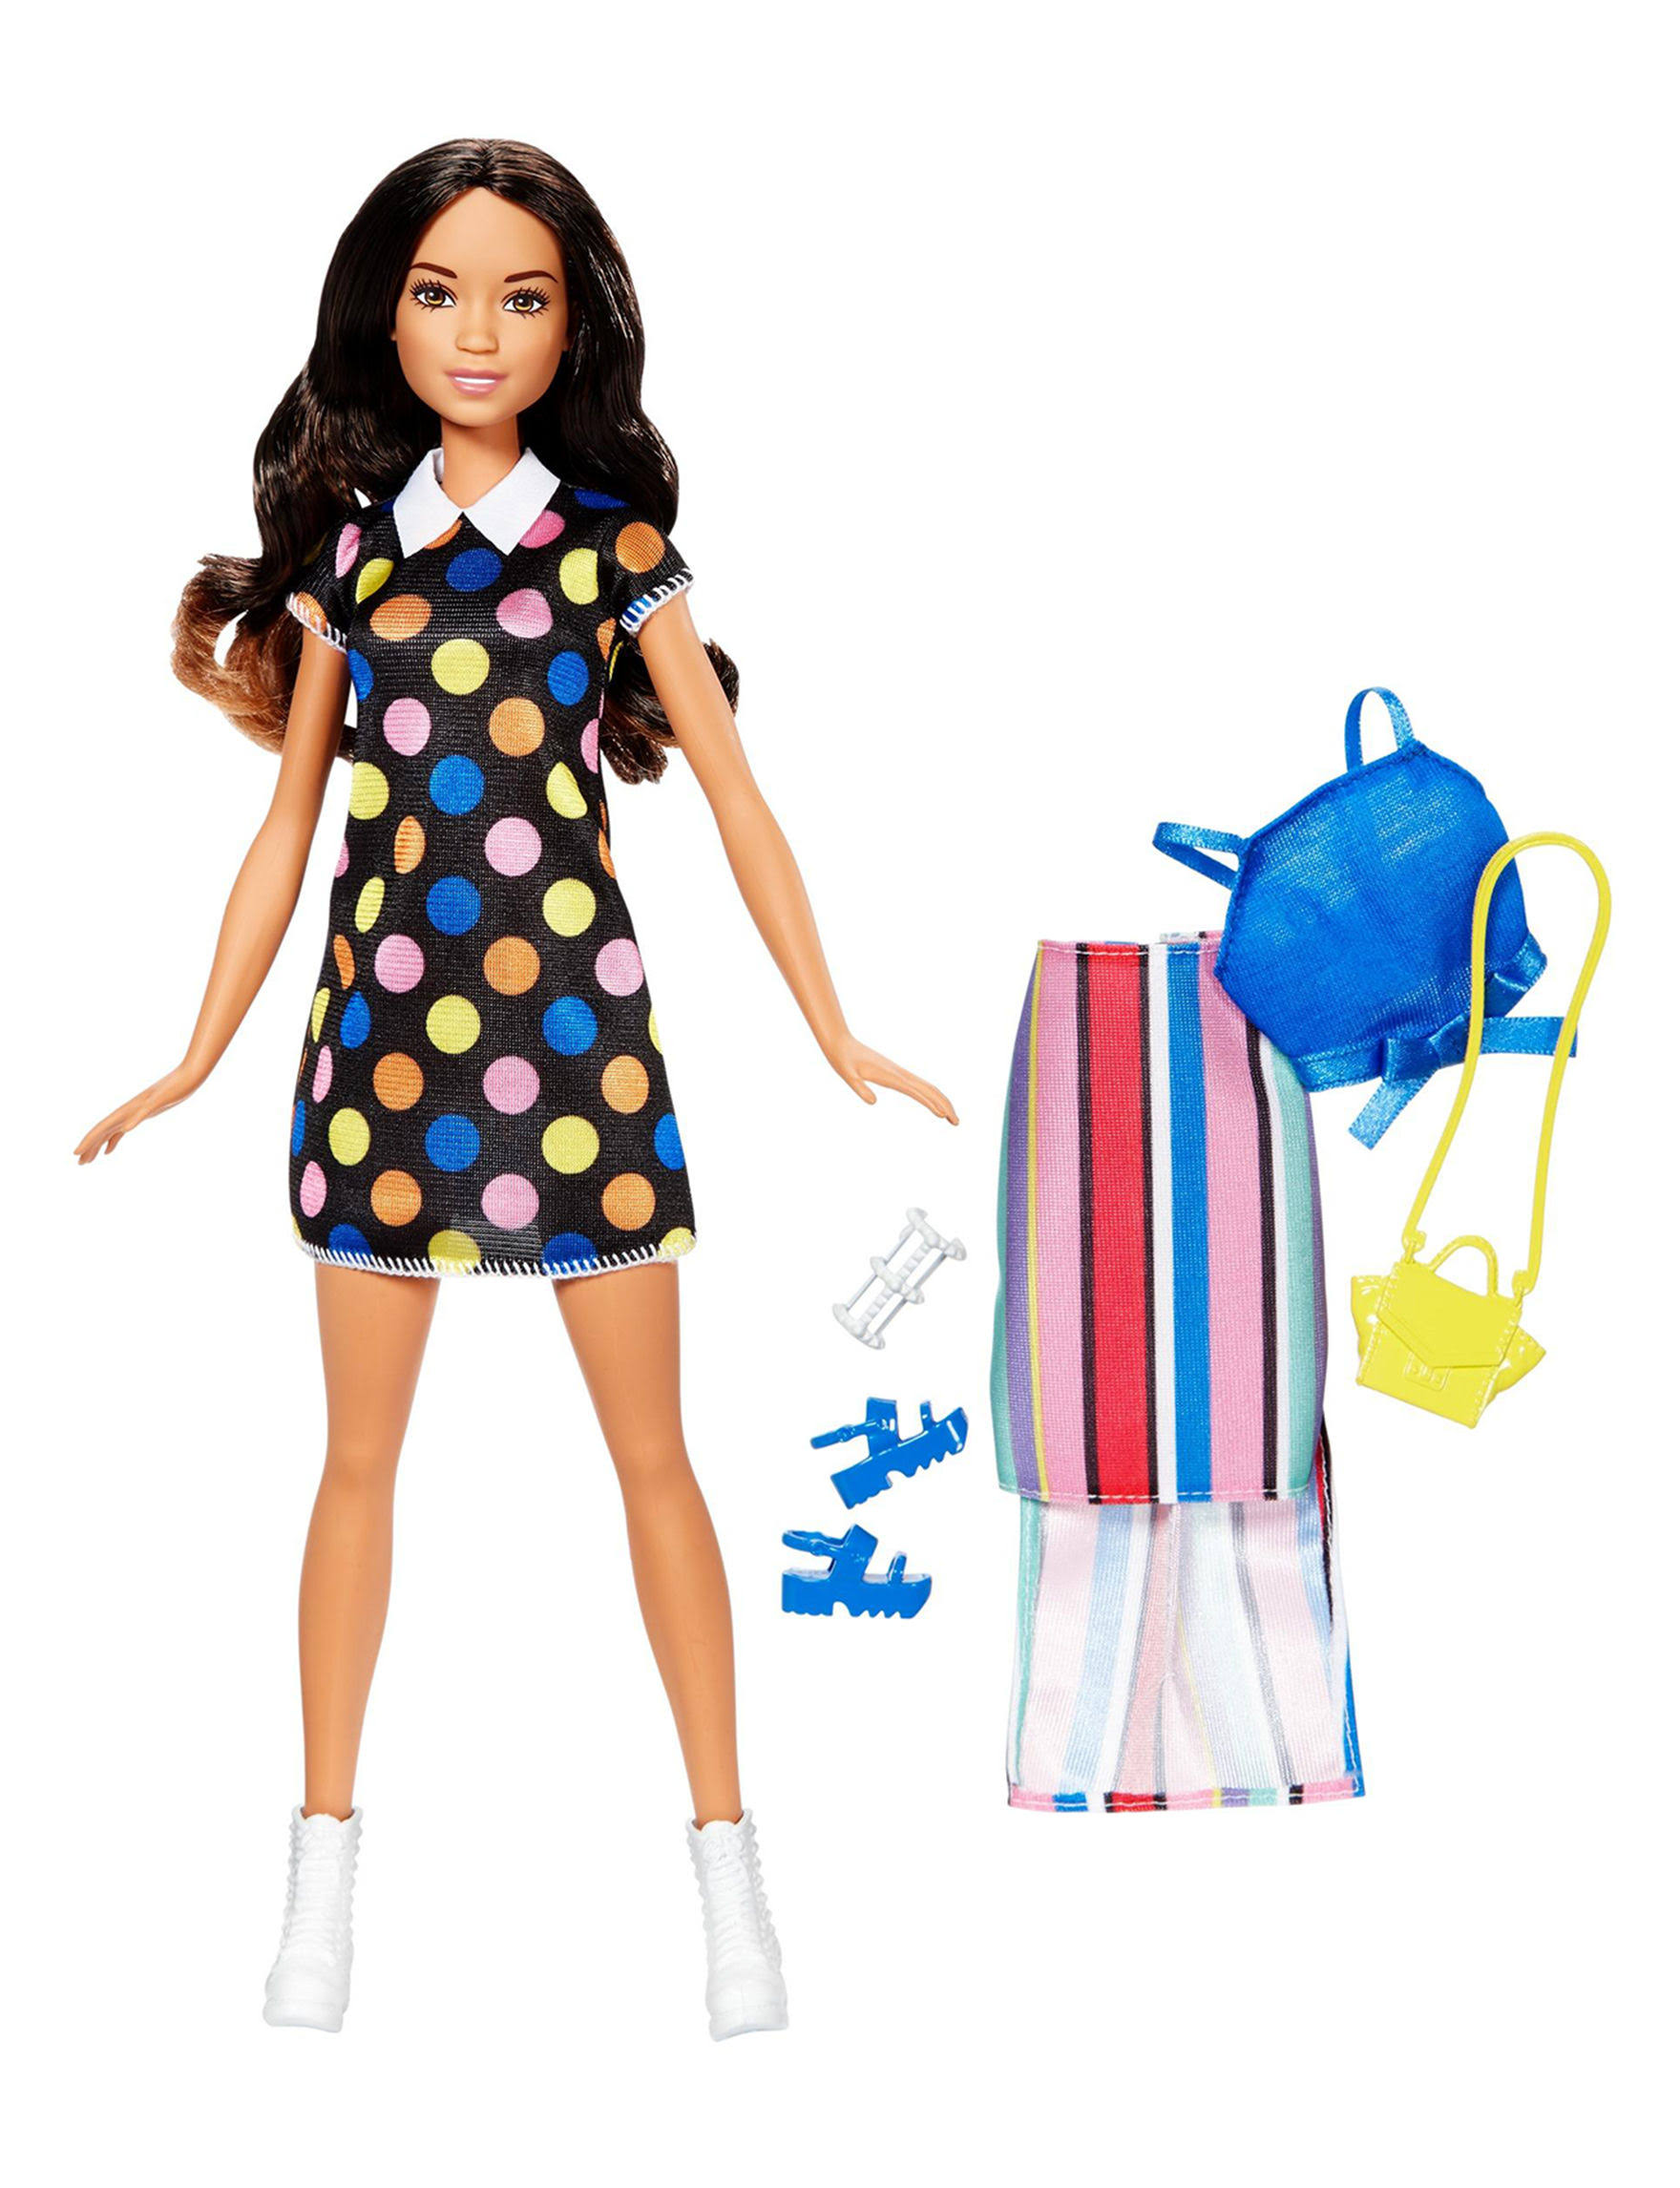 Barbie Fashion Brunette Doll